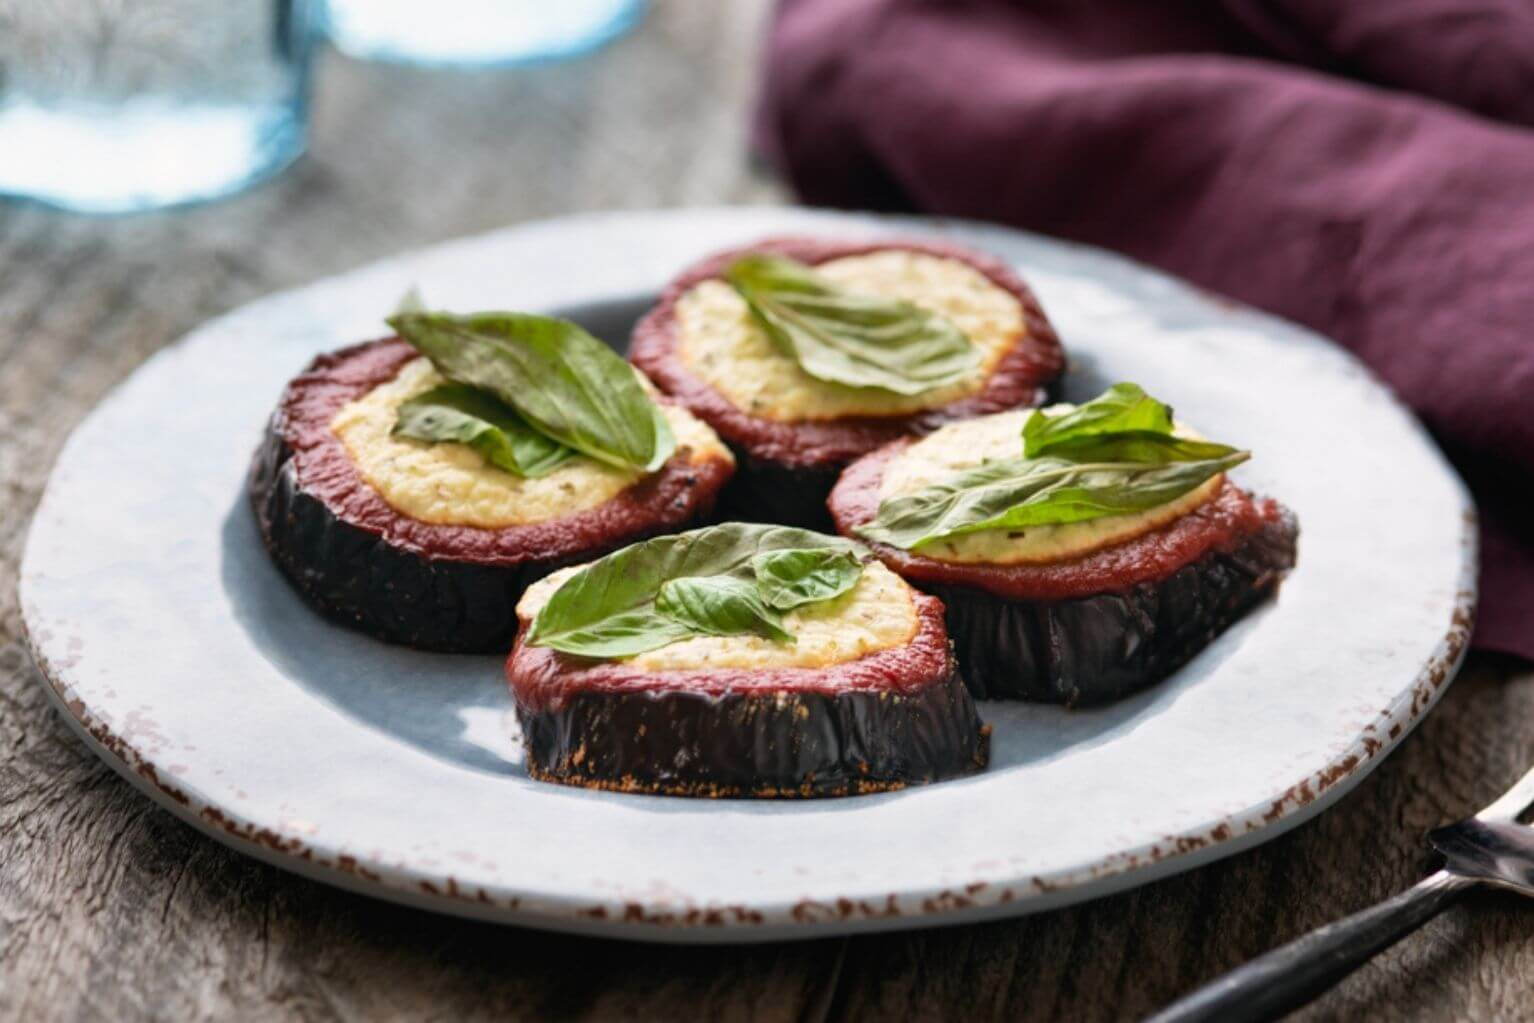 Four baked eggplant slices with ricotta and basil on a blue plate next to a maroon napkin and fork.